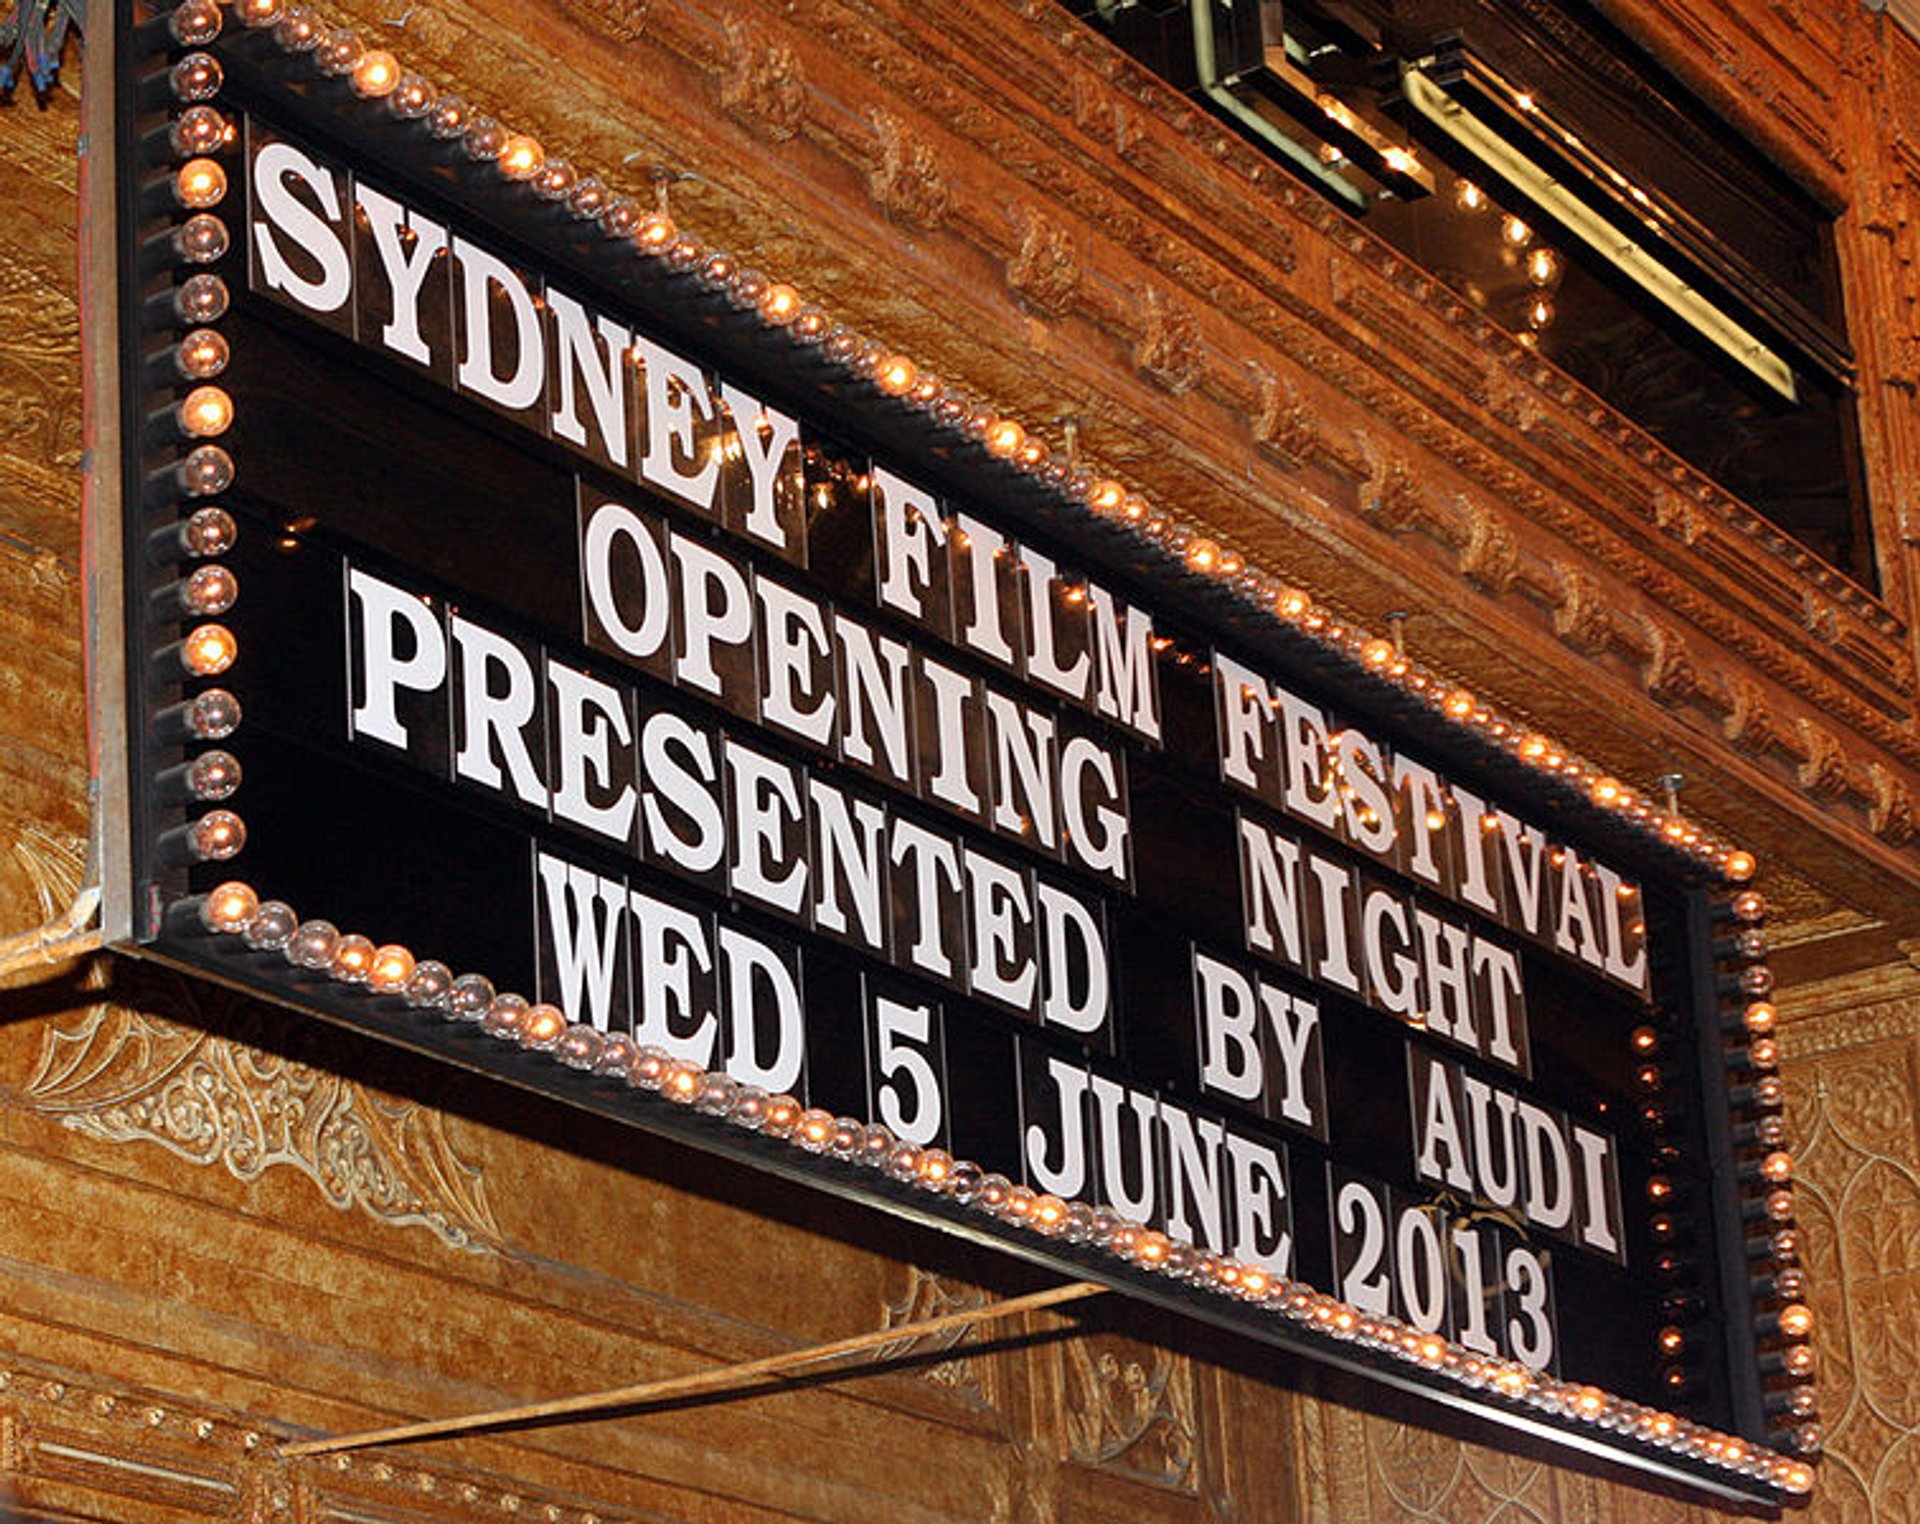 Sydney Film Festival in Sydney - Best Season